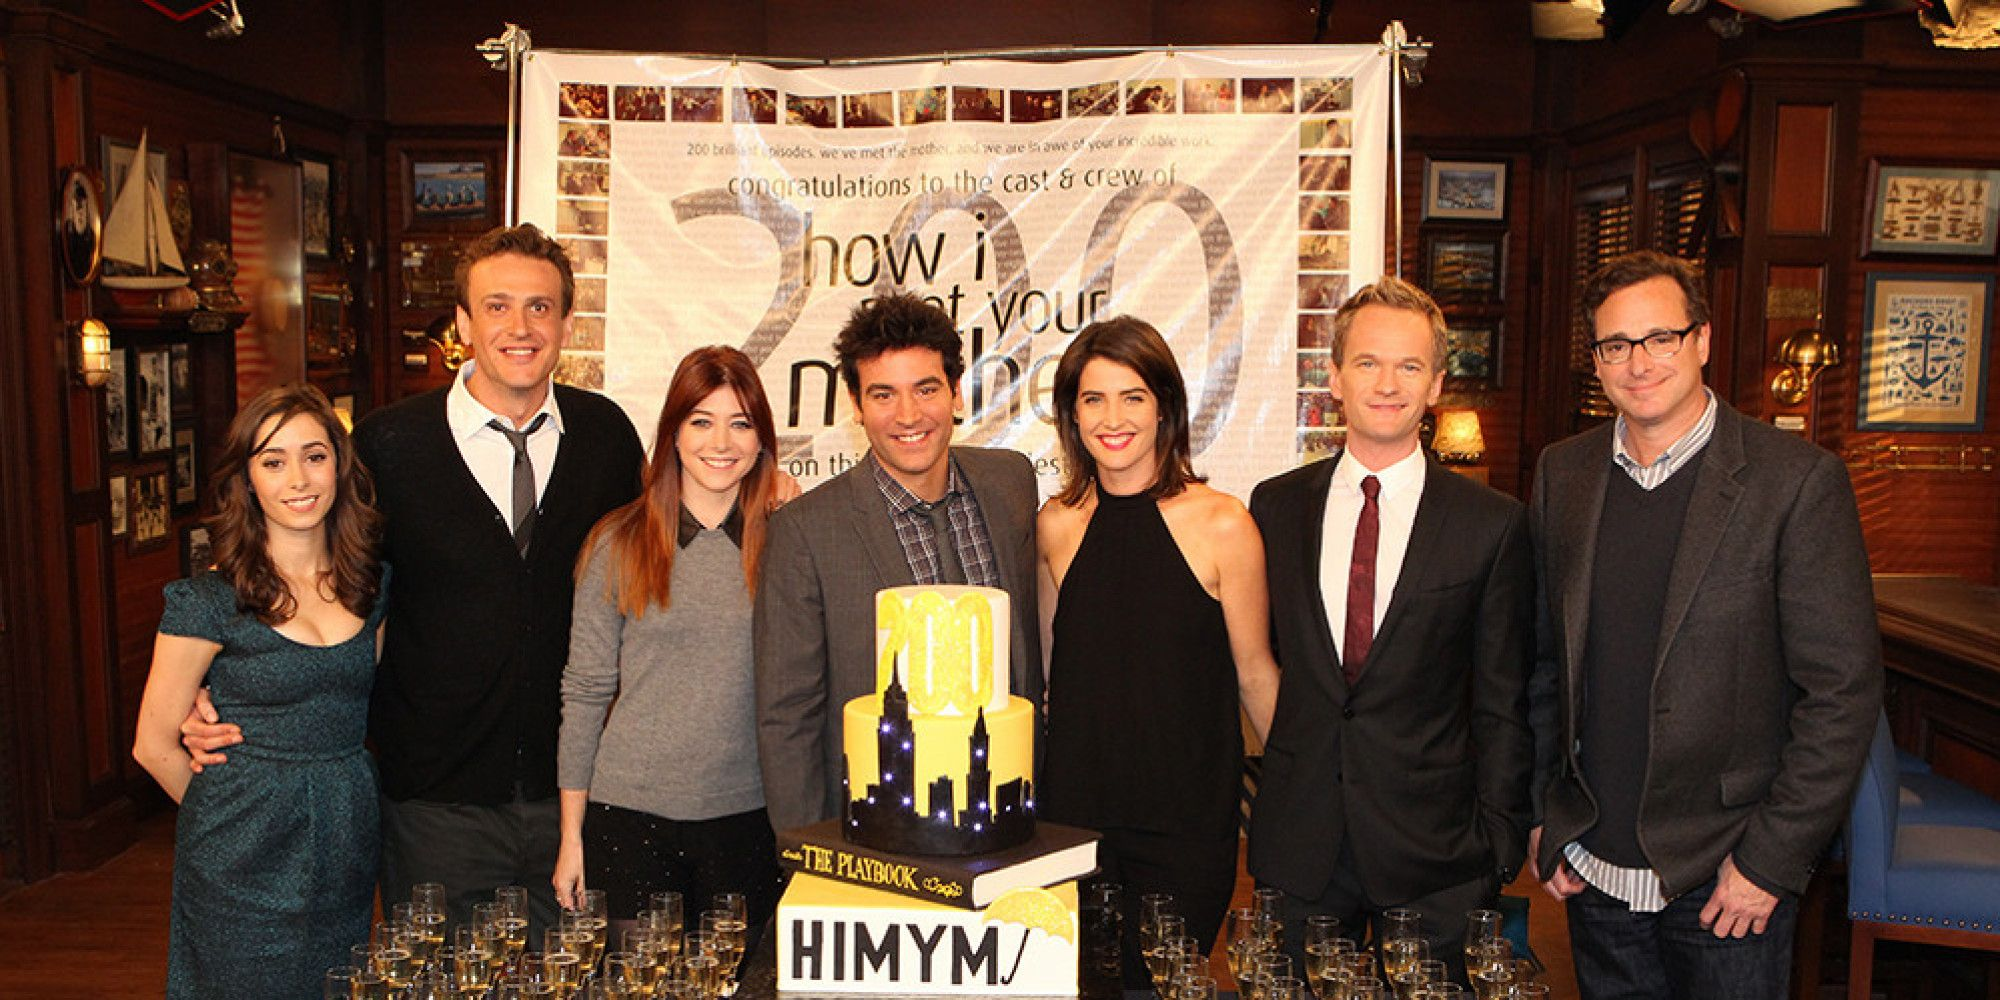 How I Met Your Mother How I Met Your Mother I Meet You Himym